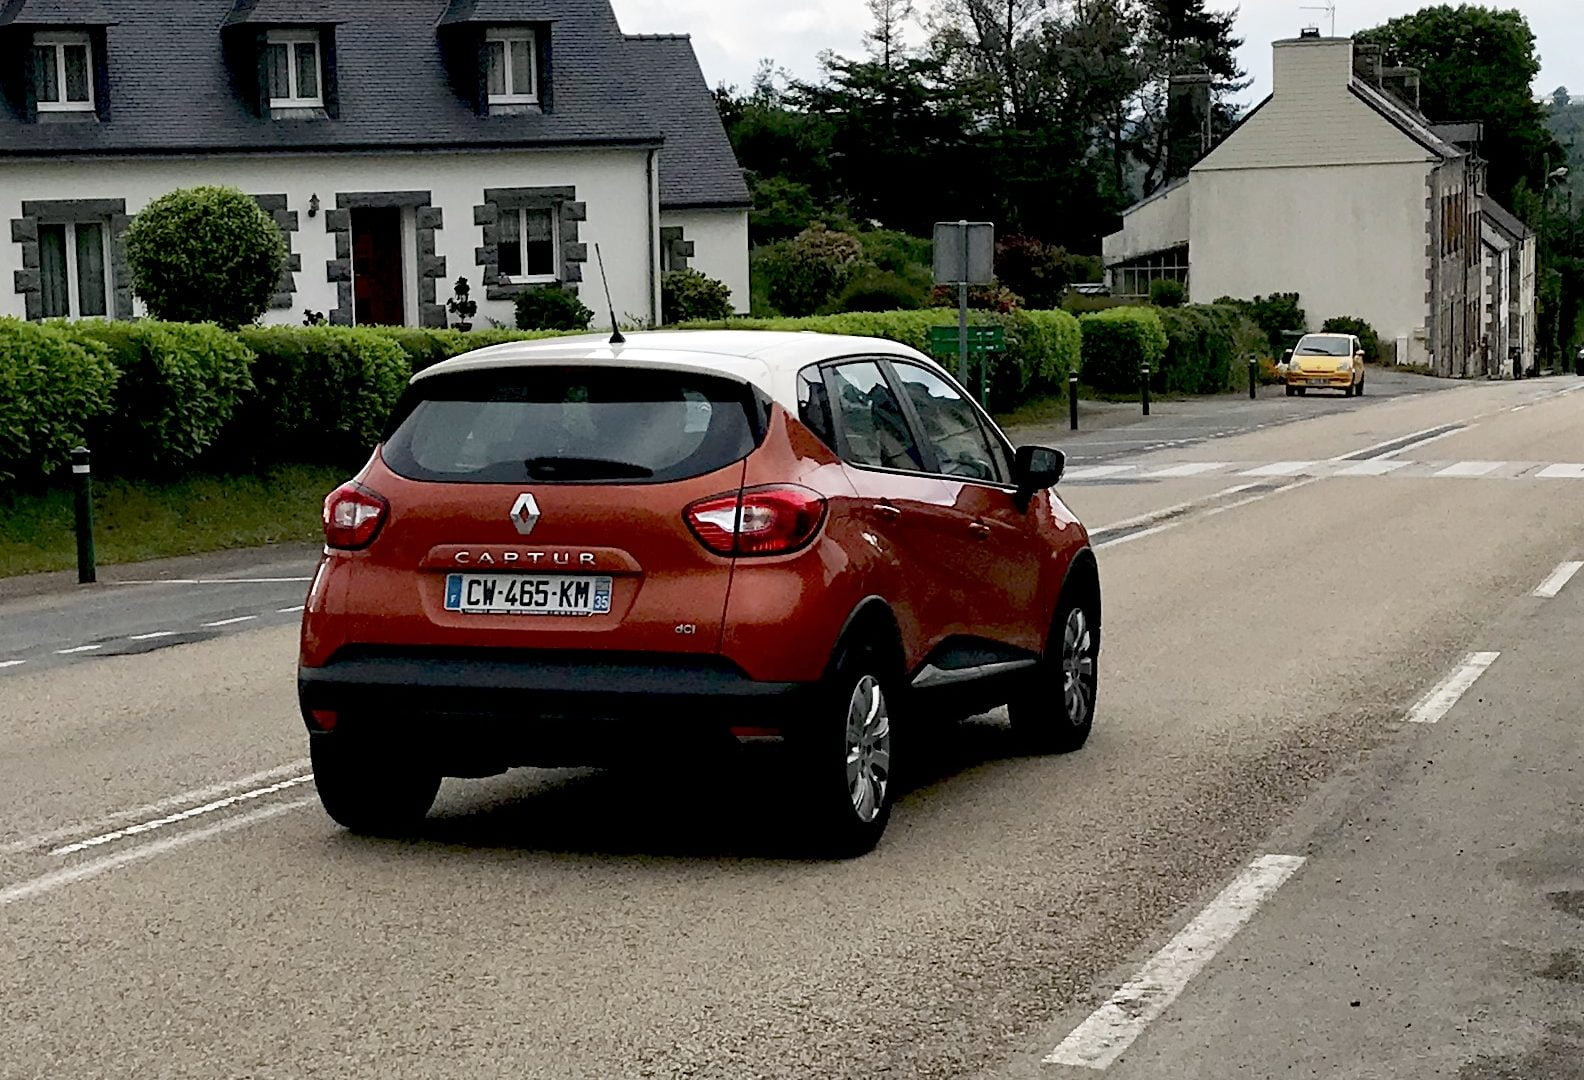 Renault Captur in Huelgoat